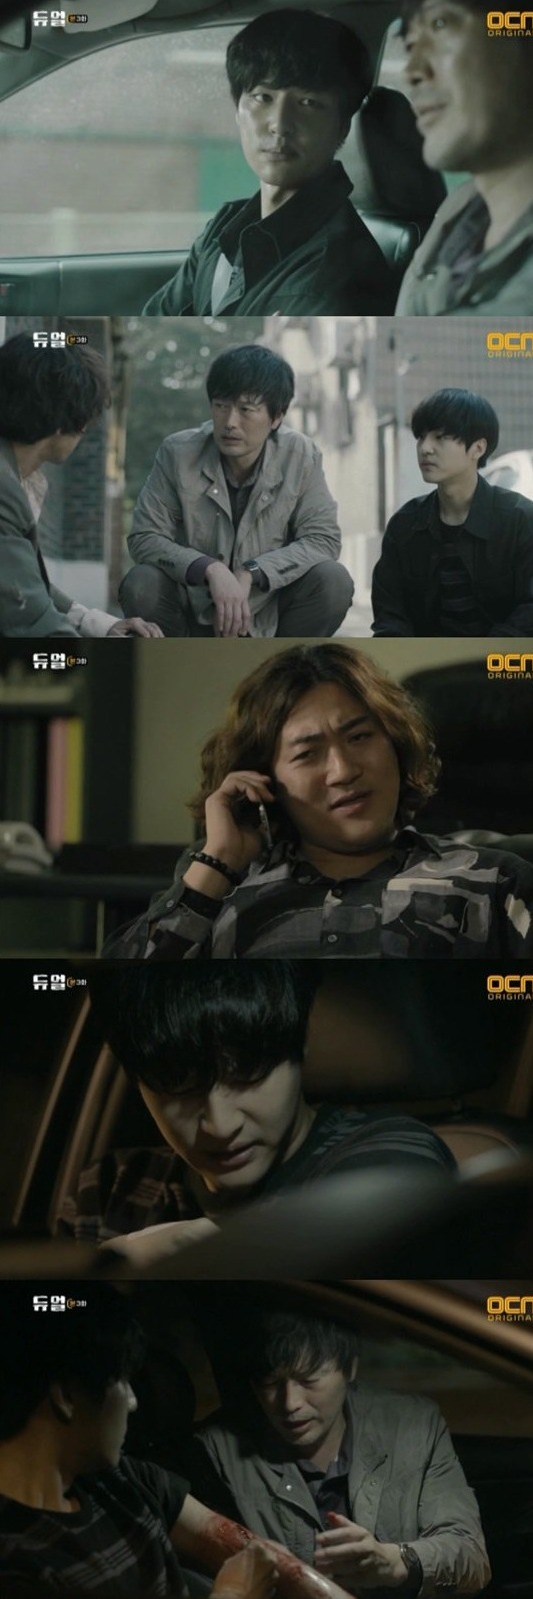 [Spoiler] Added episodes 3 and 4 captures for the Korean drama 'Duel'